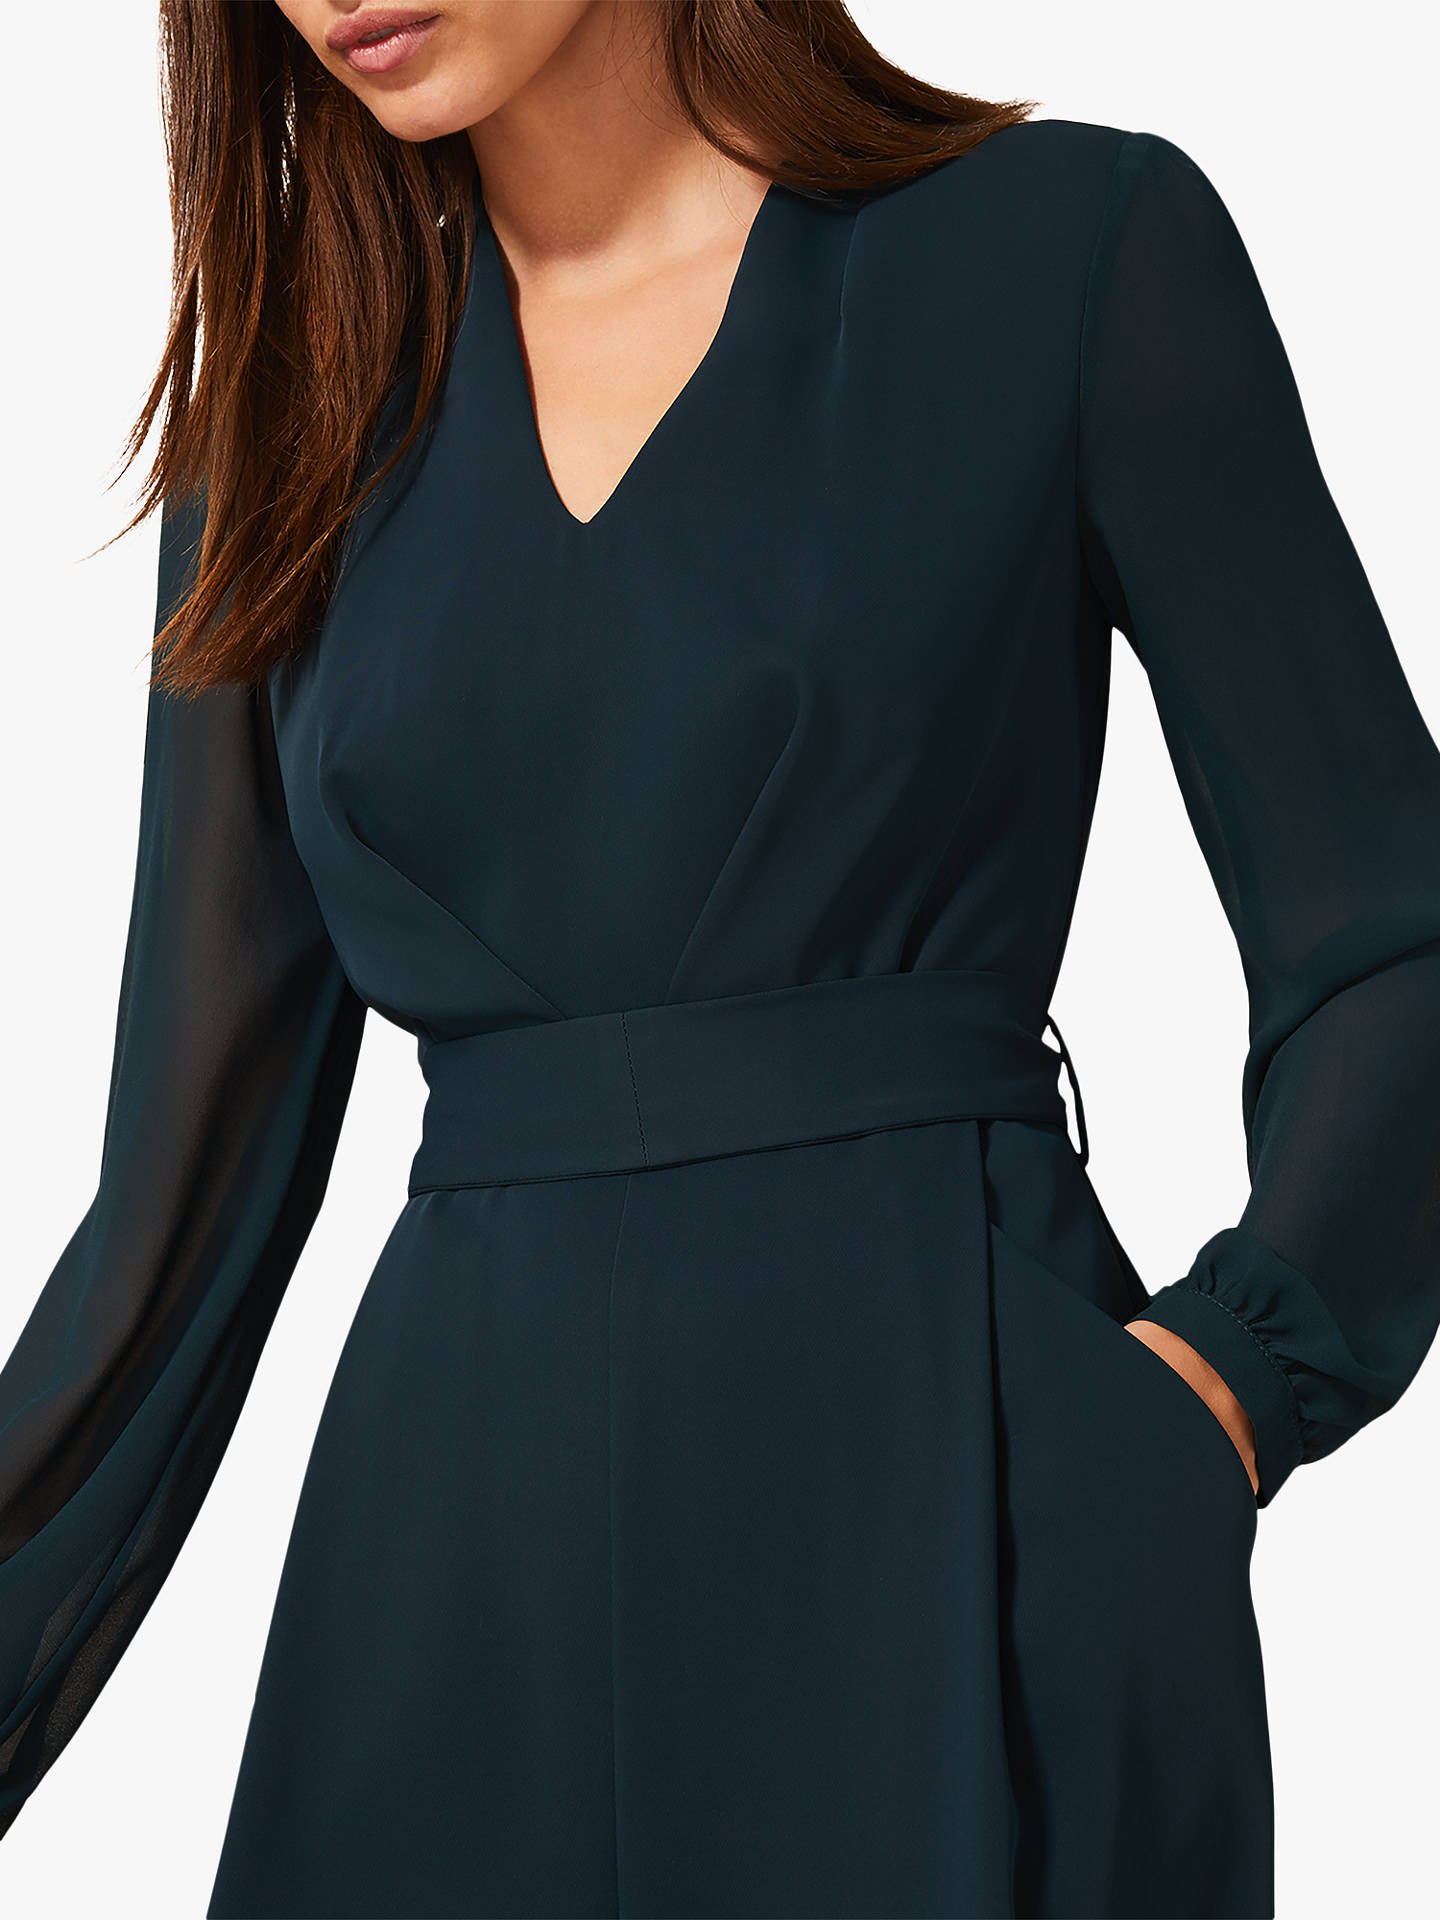 Buy Phase Eight Audrey Tie Jumpsuit, Galactic Green, 20 Online at johnlewis.com